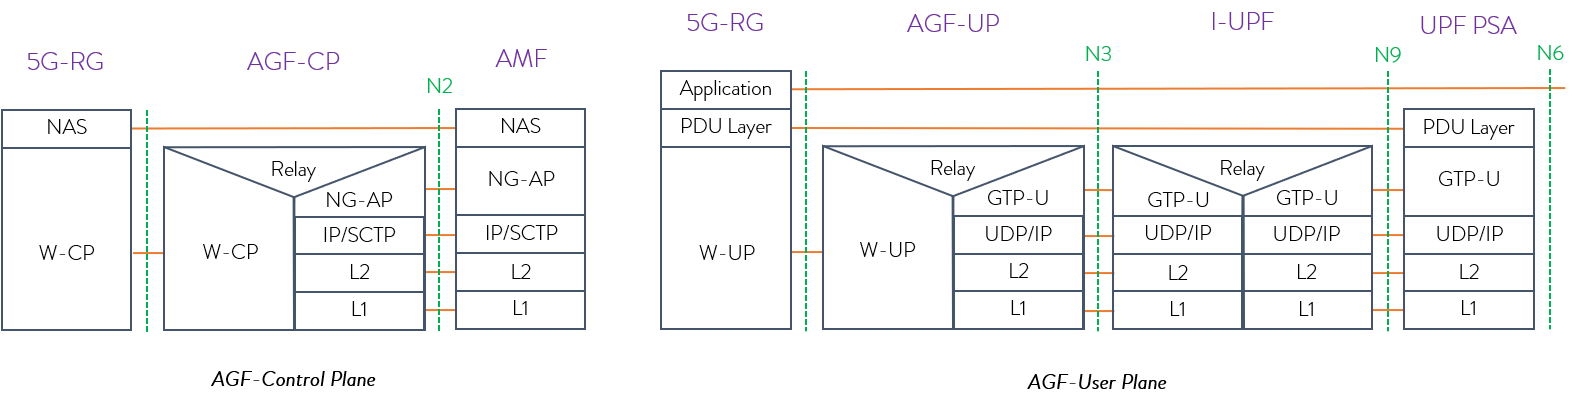 5g-rg-cp-up-protocol-stack